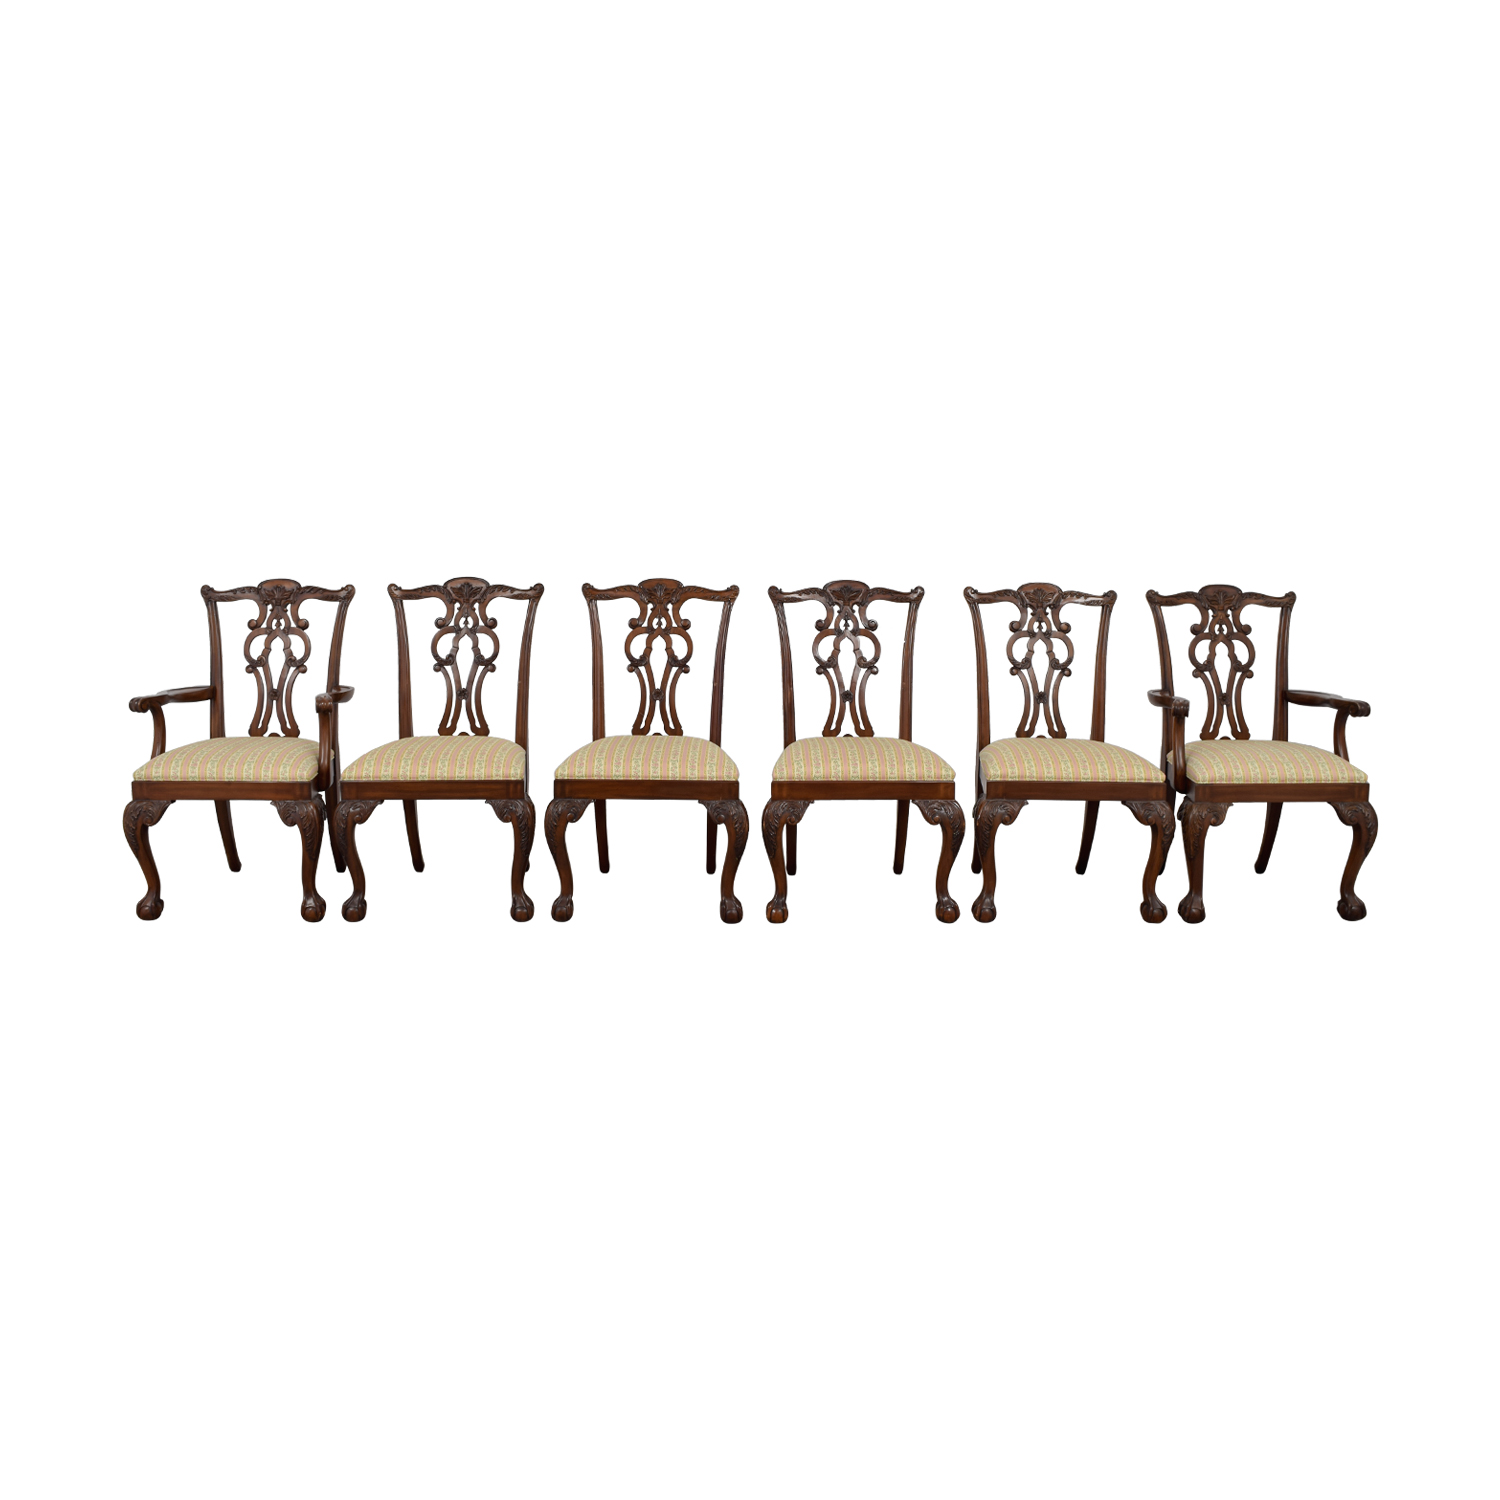 Ethan Allen Ethan Allen Brown Wood and Fabric Dining Chairs dimensions